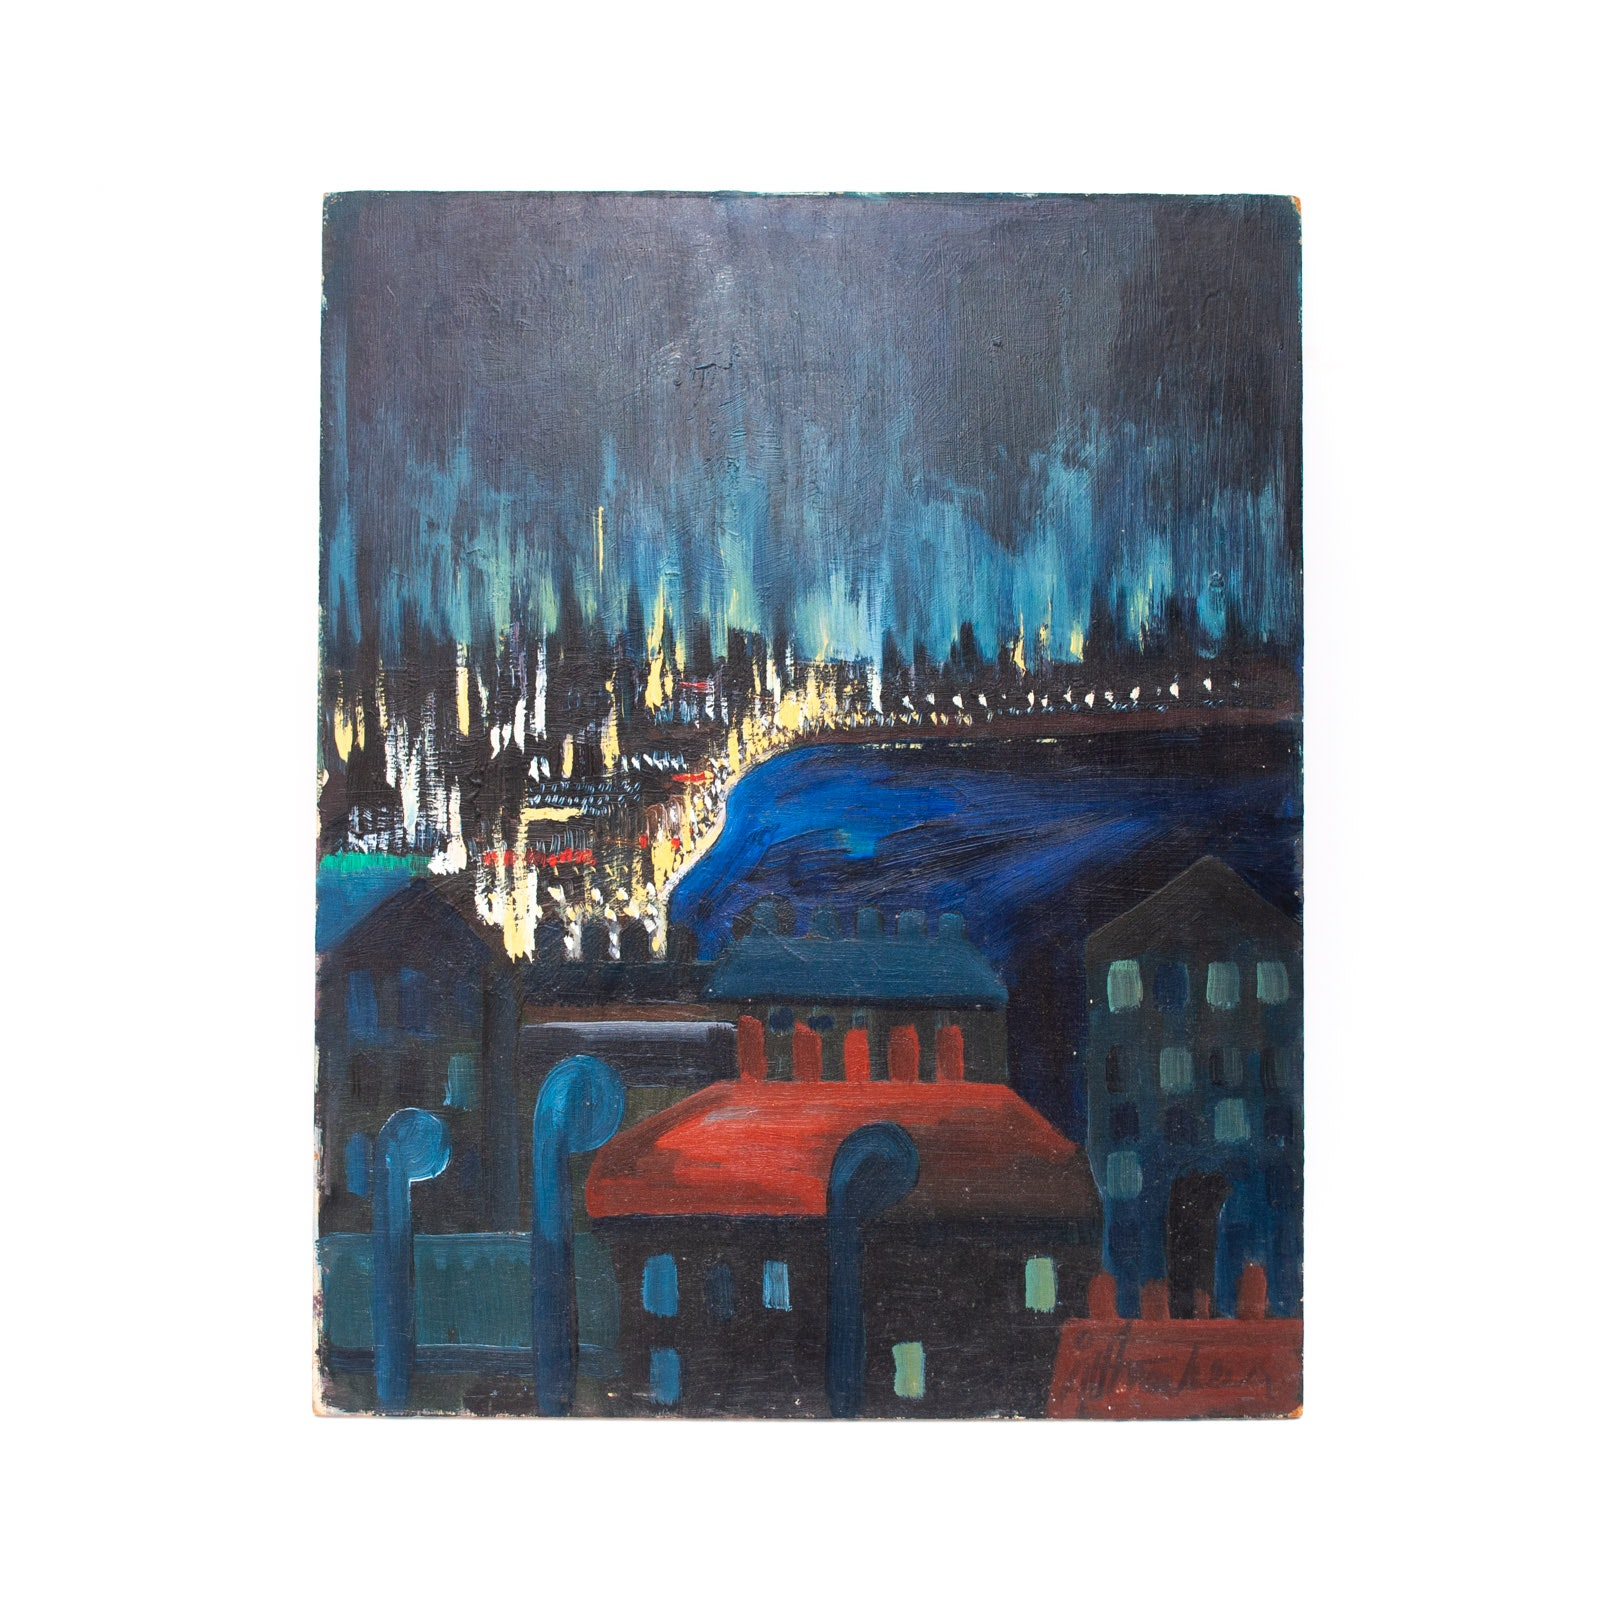 Åke Strömber 1961 Original Oil Painting on Masonite of Stockholm Cityscape